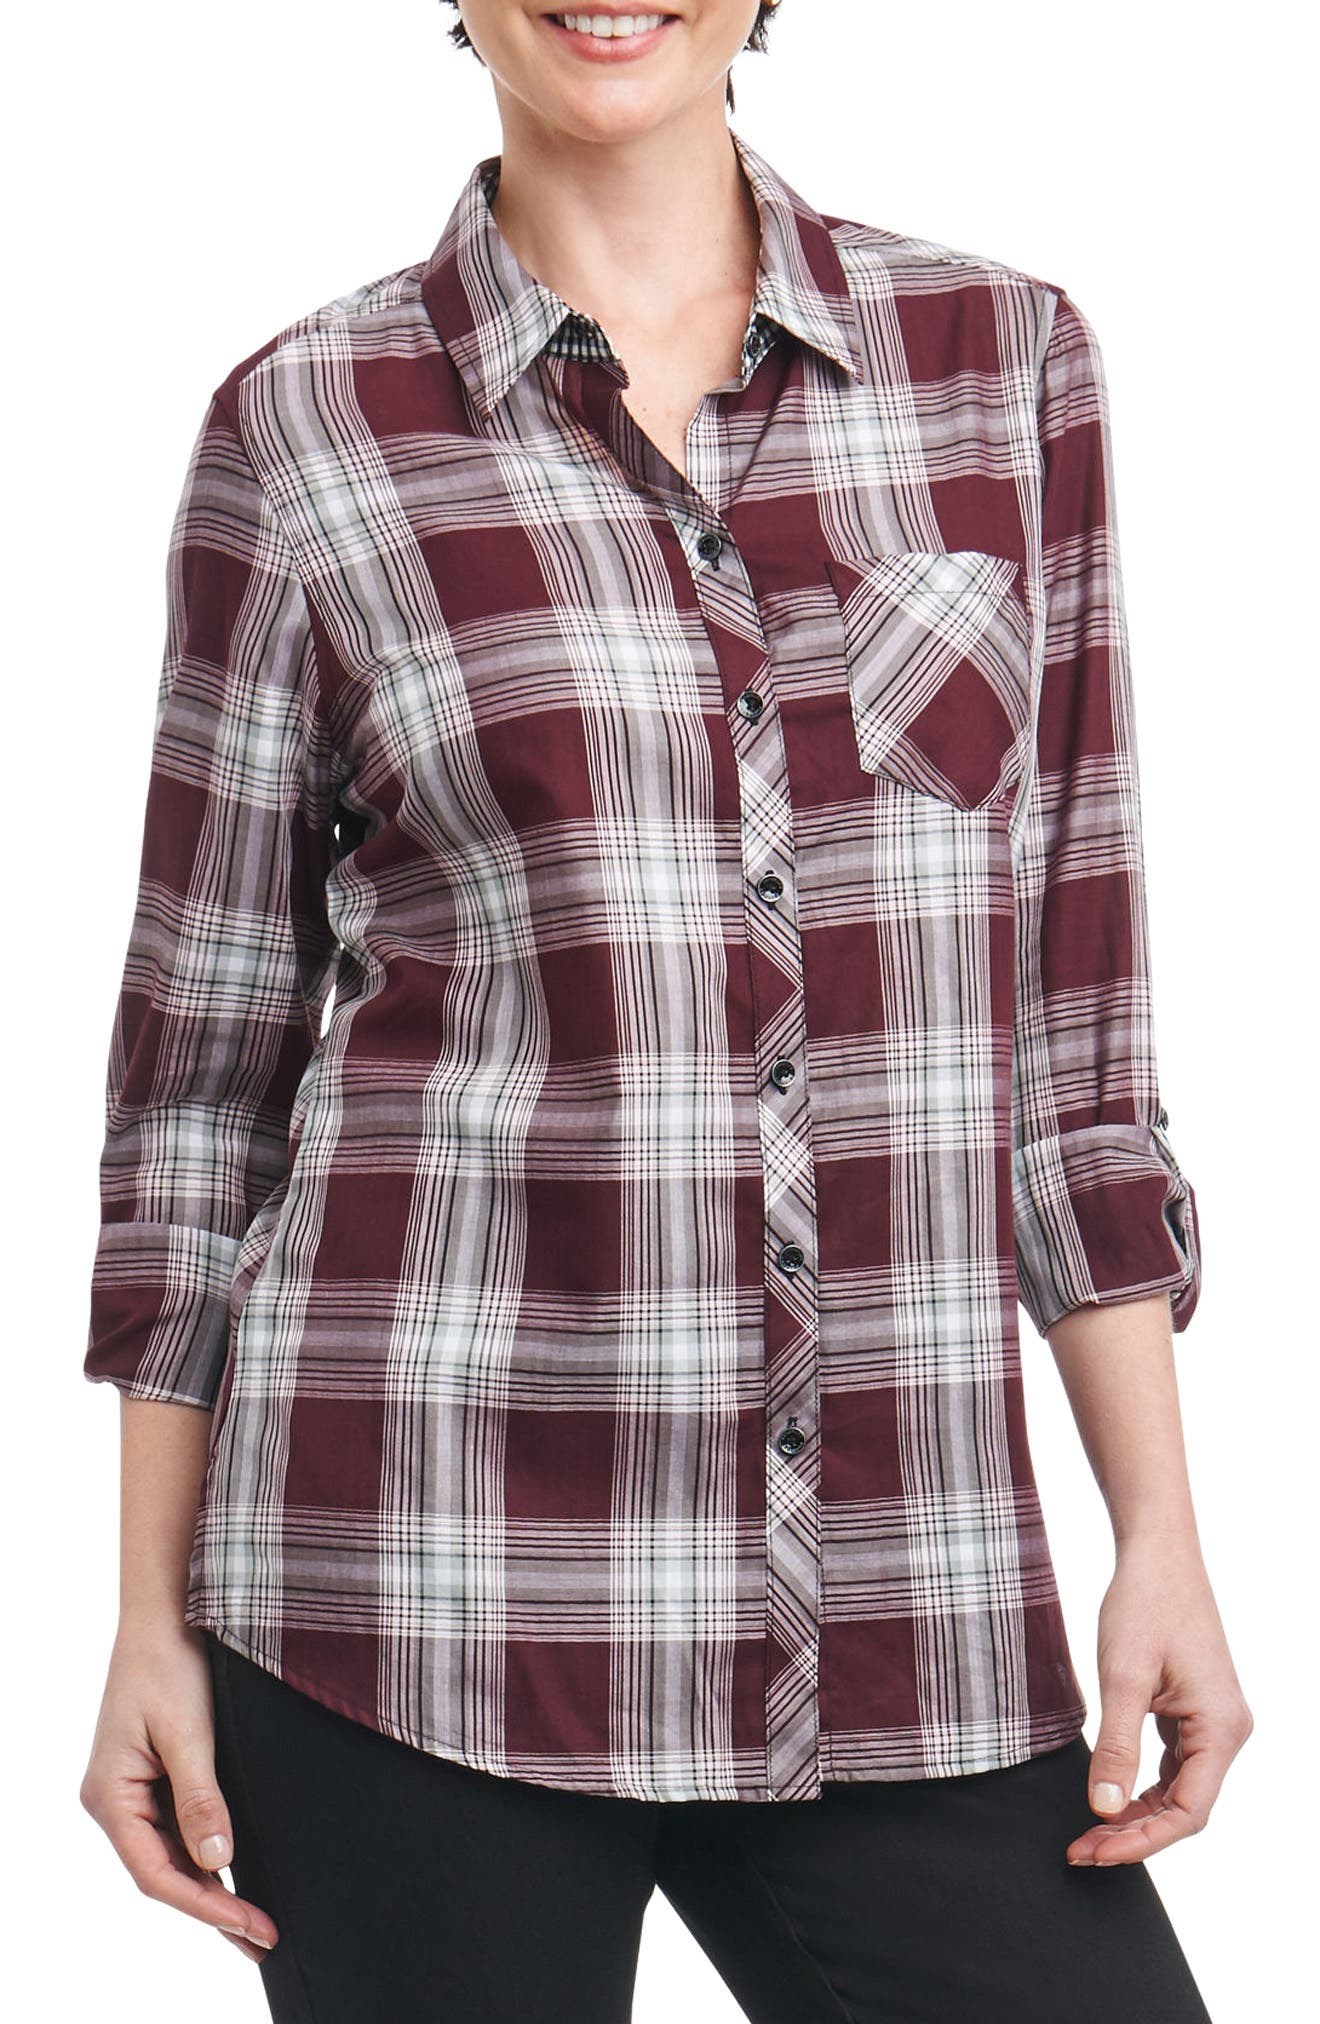 Addison Plaid Shirt,                             Main thumbnail 1, color,                             Multi Plaid